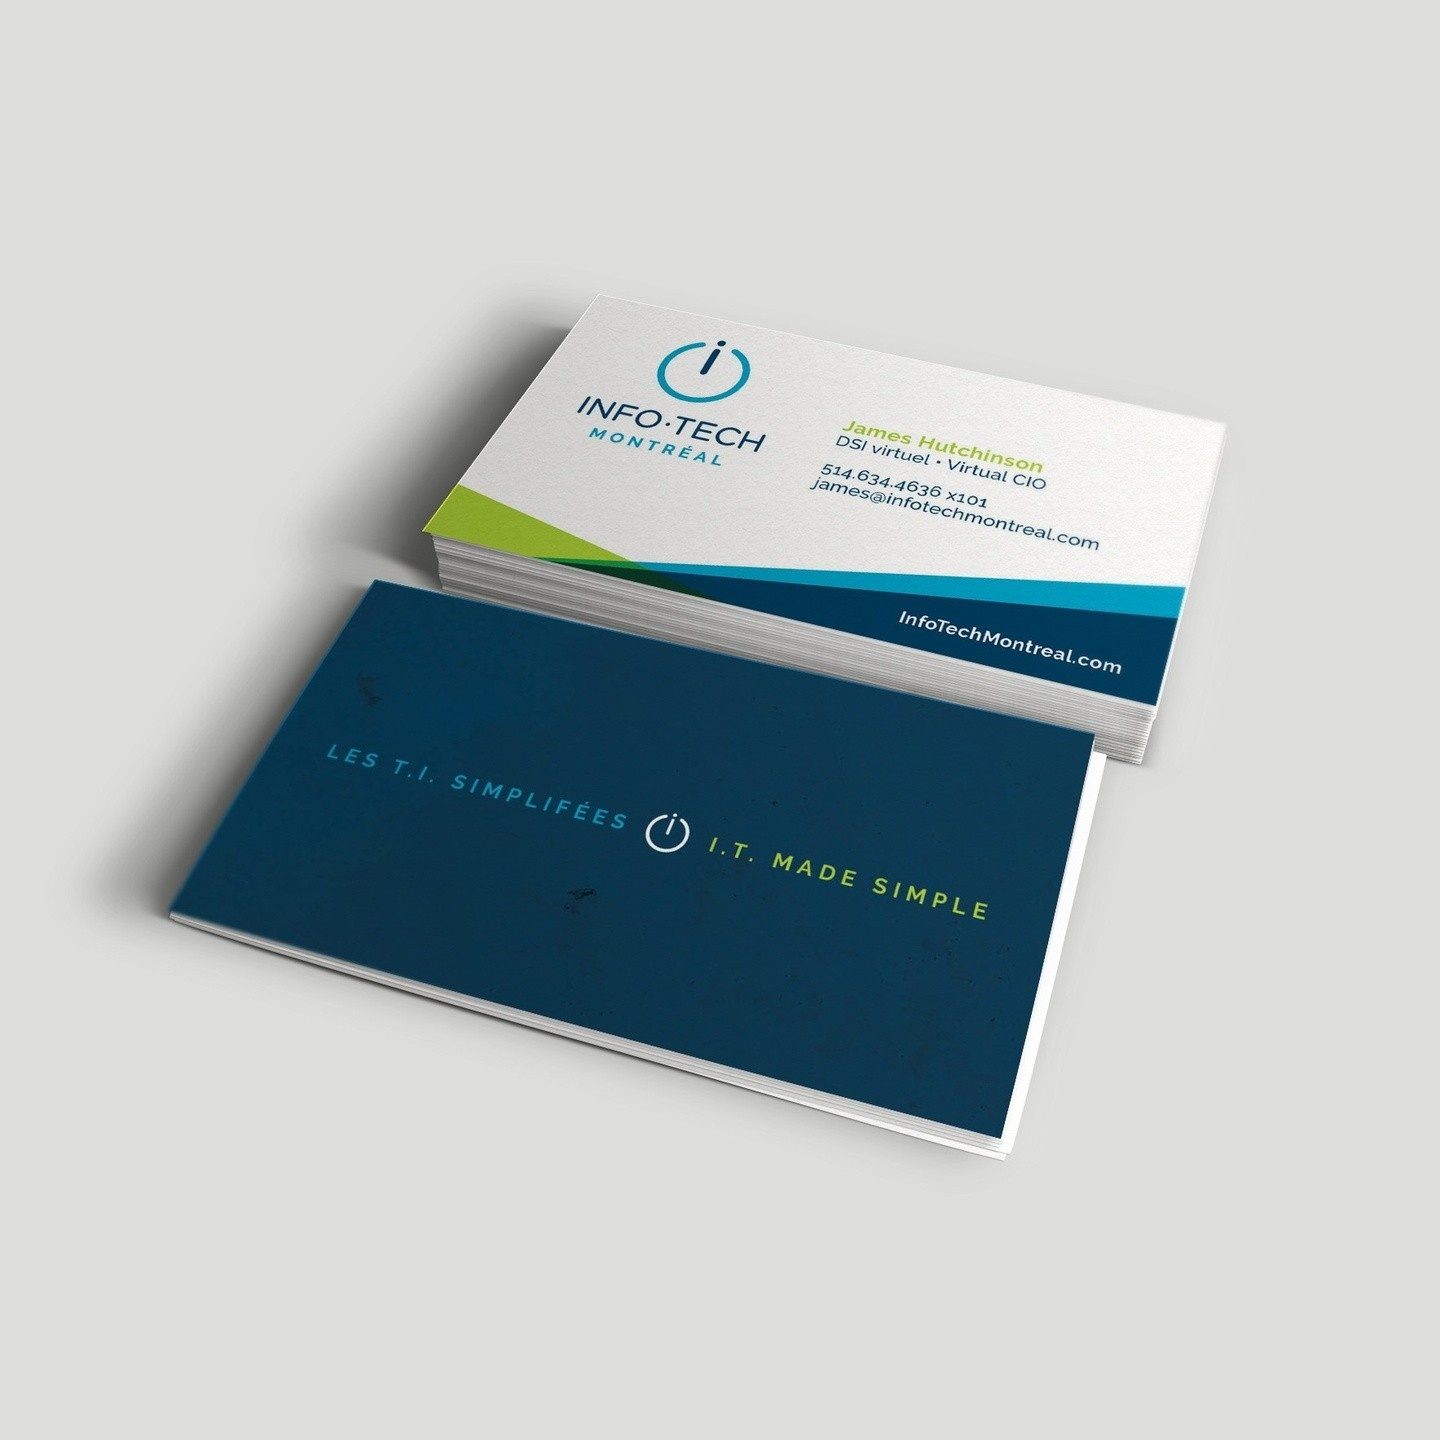 Business Card & Branding Design for IT Company by High Frequency Brands